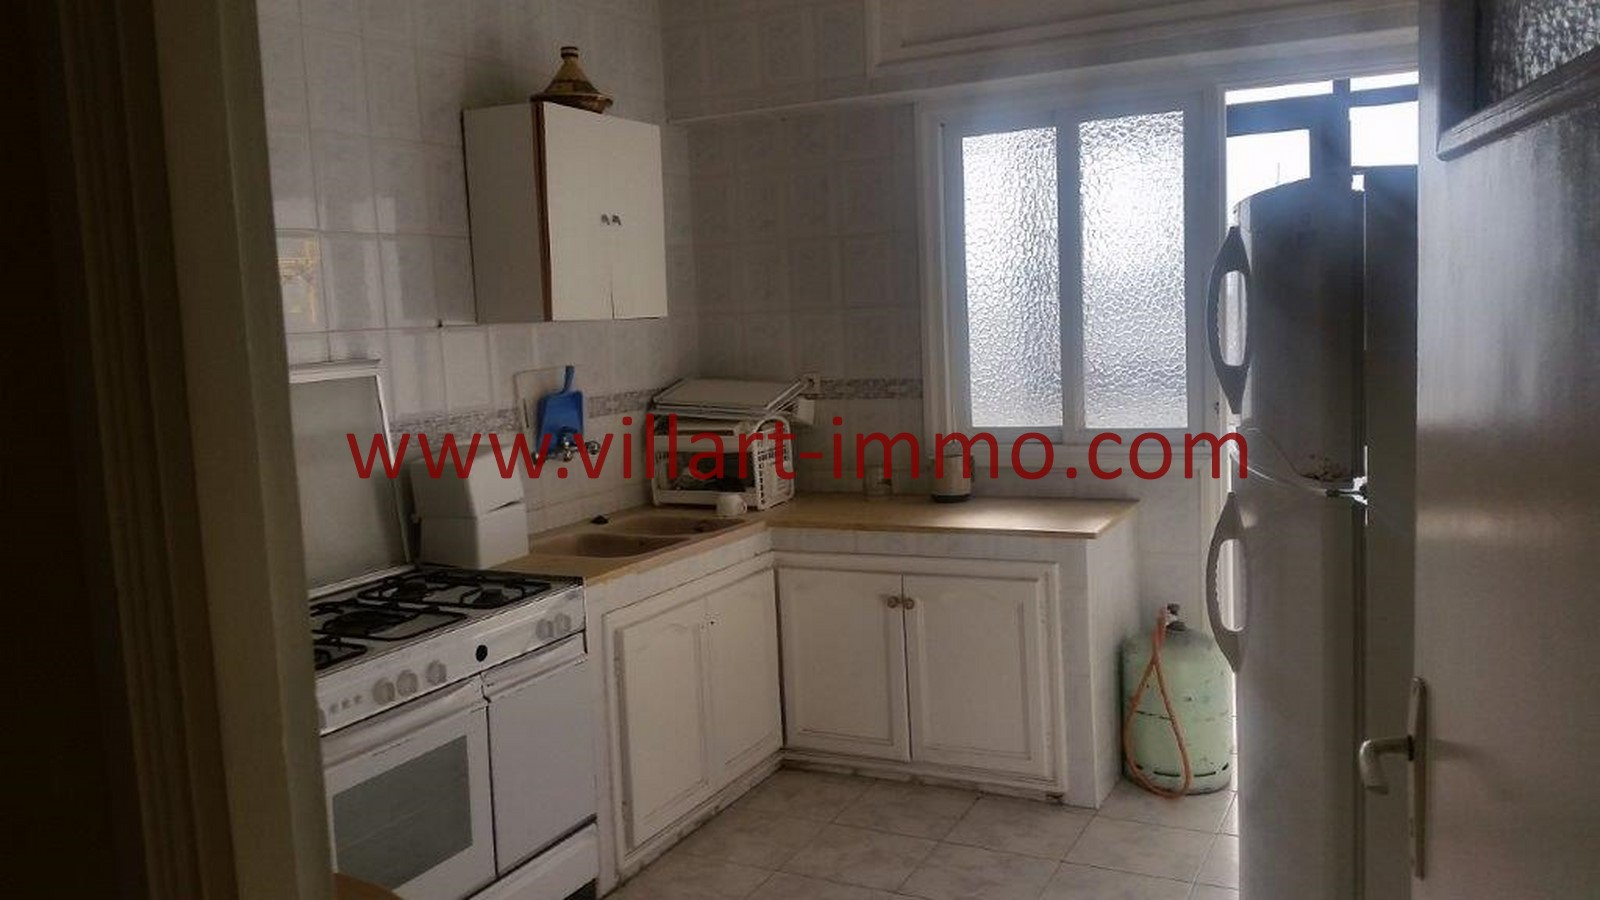 4-location-tanger-appartement-non-meublee-iberia-cuisine-l1013-villart-immo-agence-immobiliere